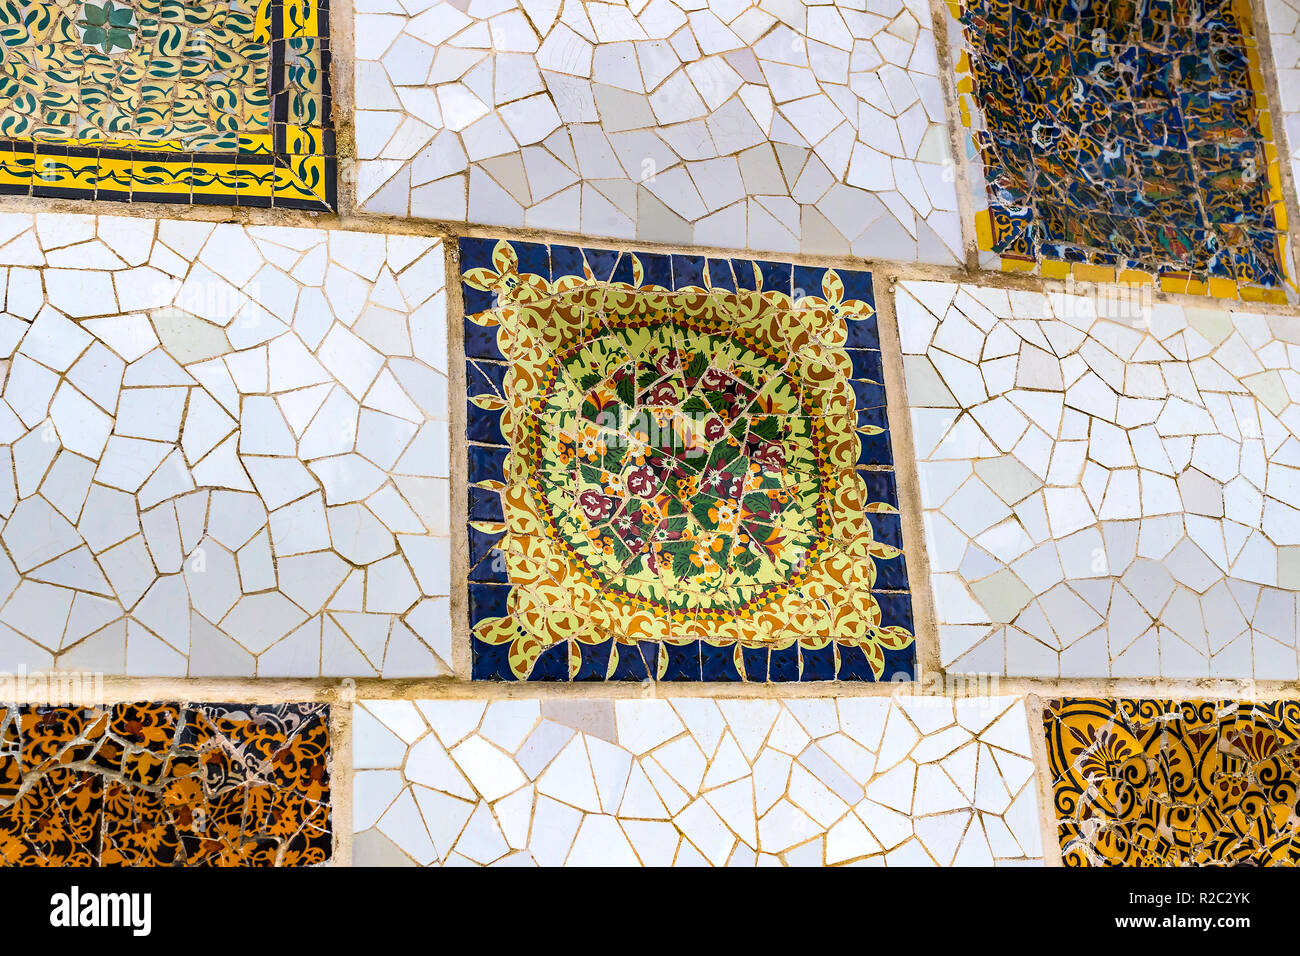 BARCELONA, SPAIN - 13 JANUARY 2018: Elements of mosaic fragments Gaudi's mosaic work in Park Guell In winter in the city of Barcelona. - Stock Image